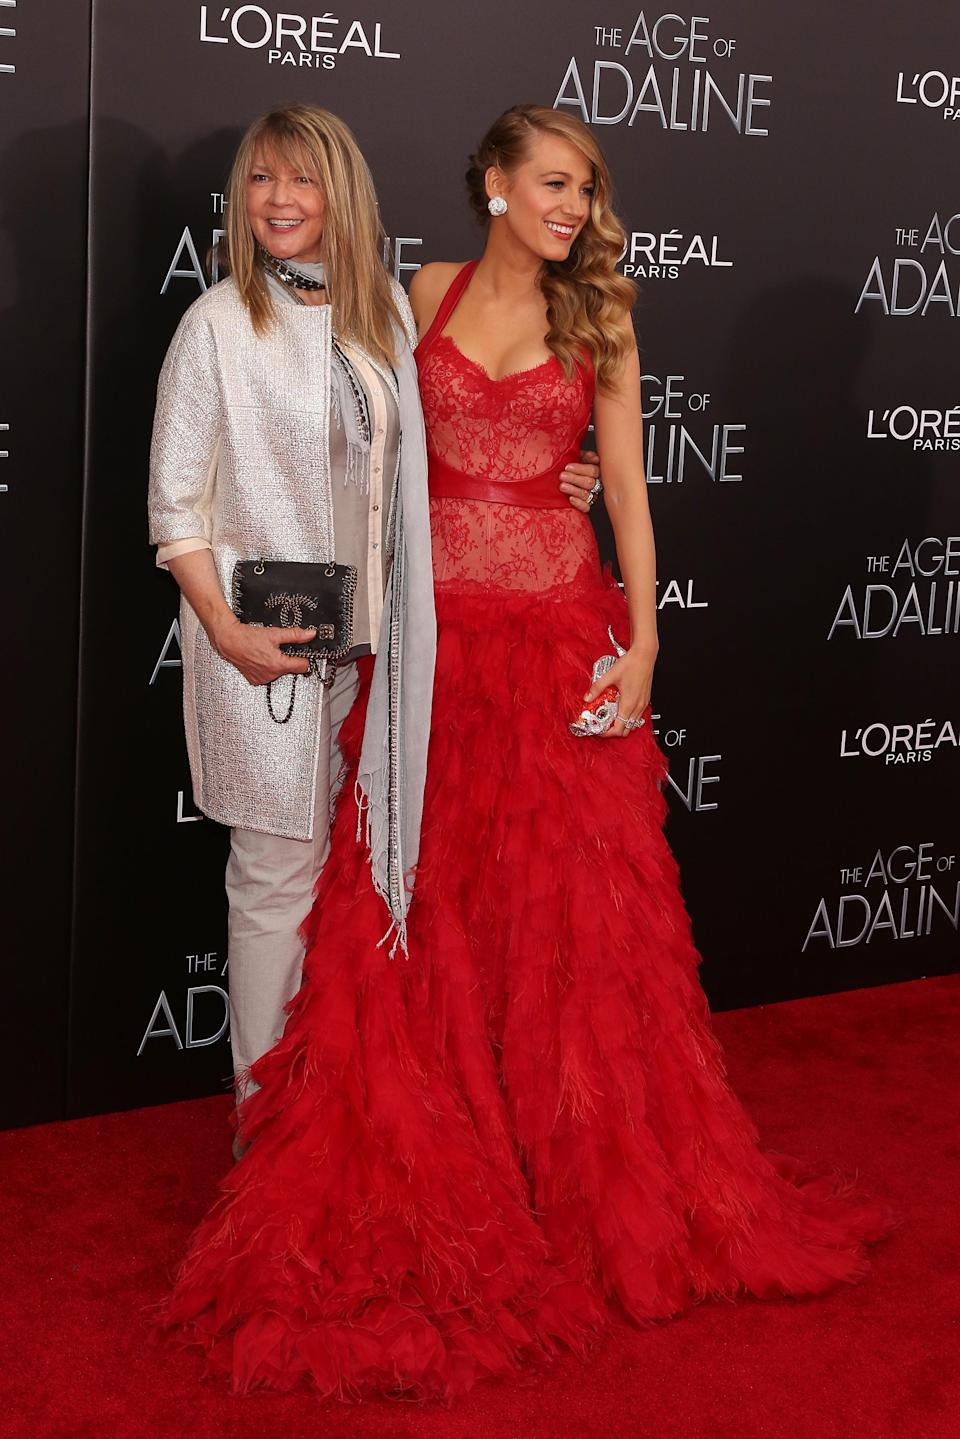 Blake and Elaine at the 'Age of Adaline' premiere. <i>(Getty Images)</i>